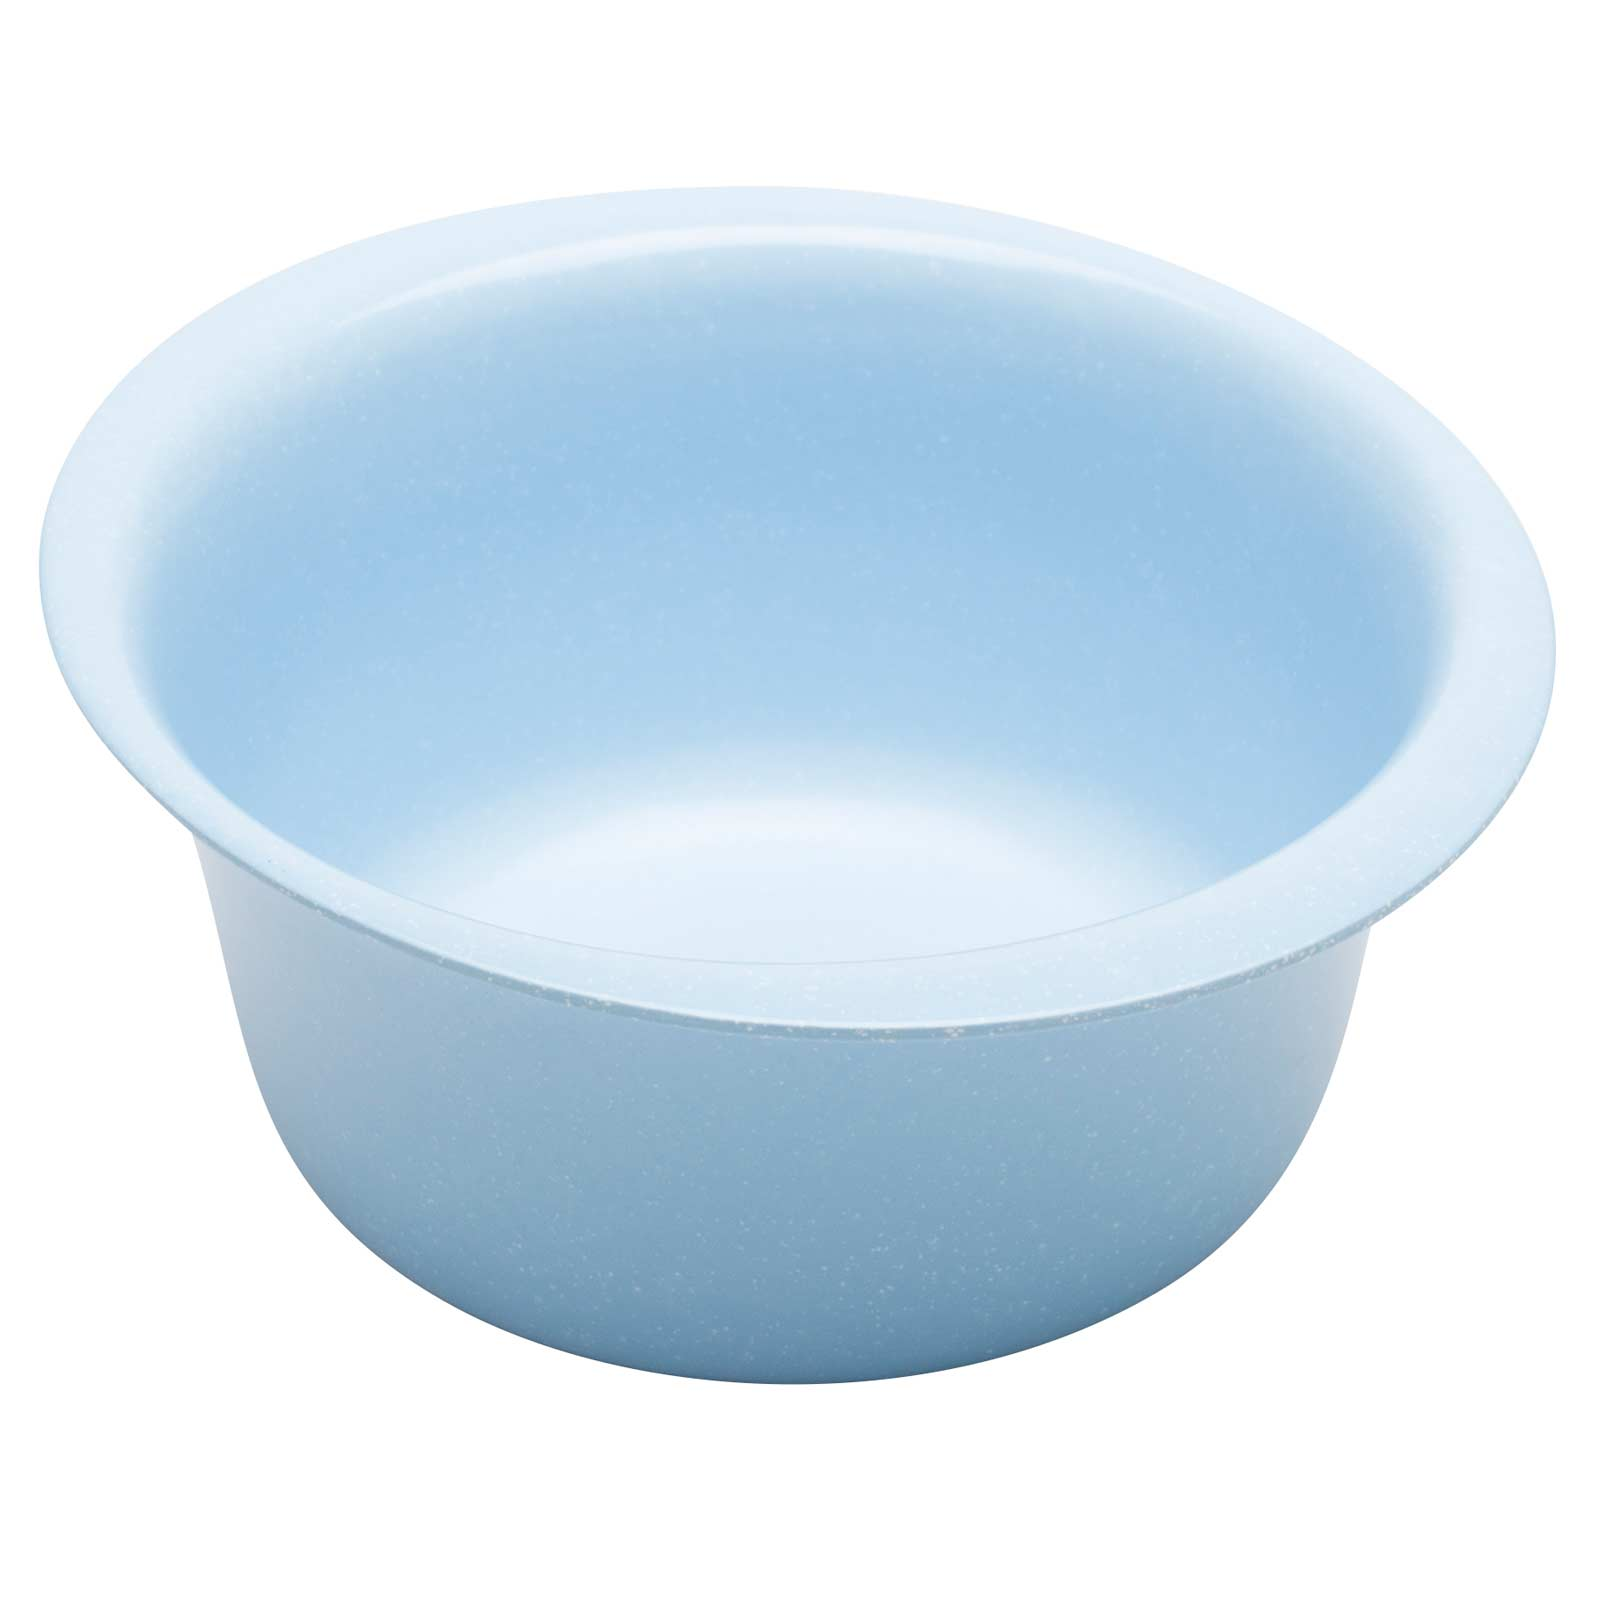 microwavable plates and bowls 4 pack